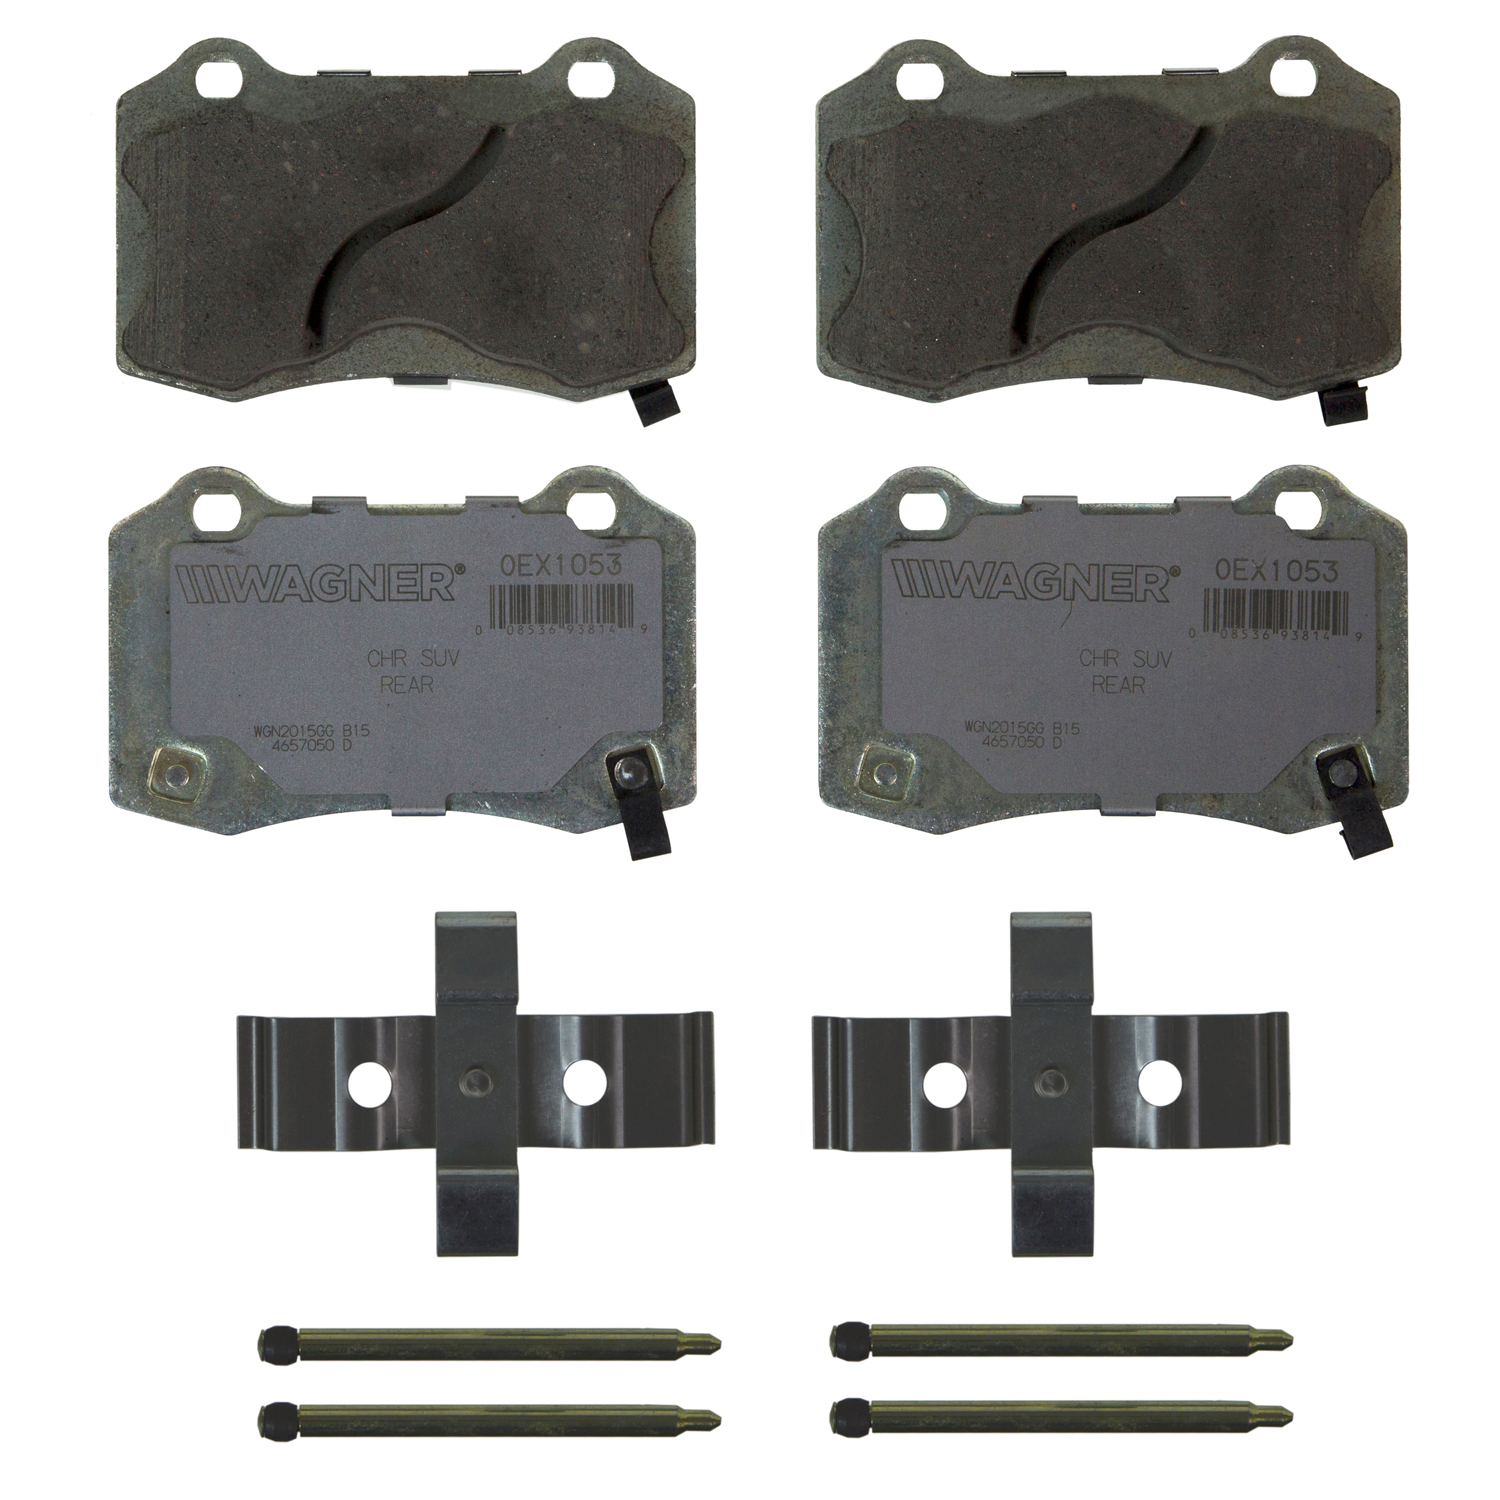 Wagner Brake OEX Ceramic Disc Brake Pad Set | OEX1053